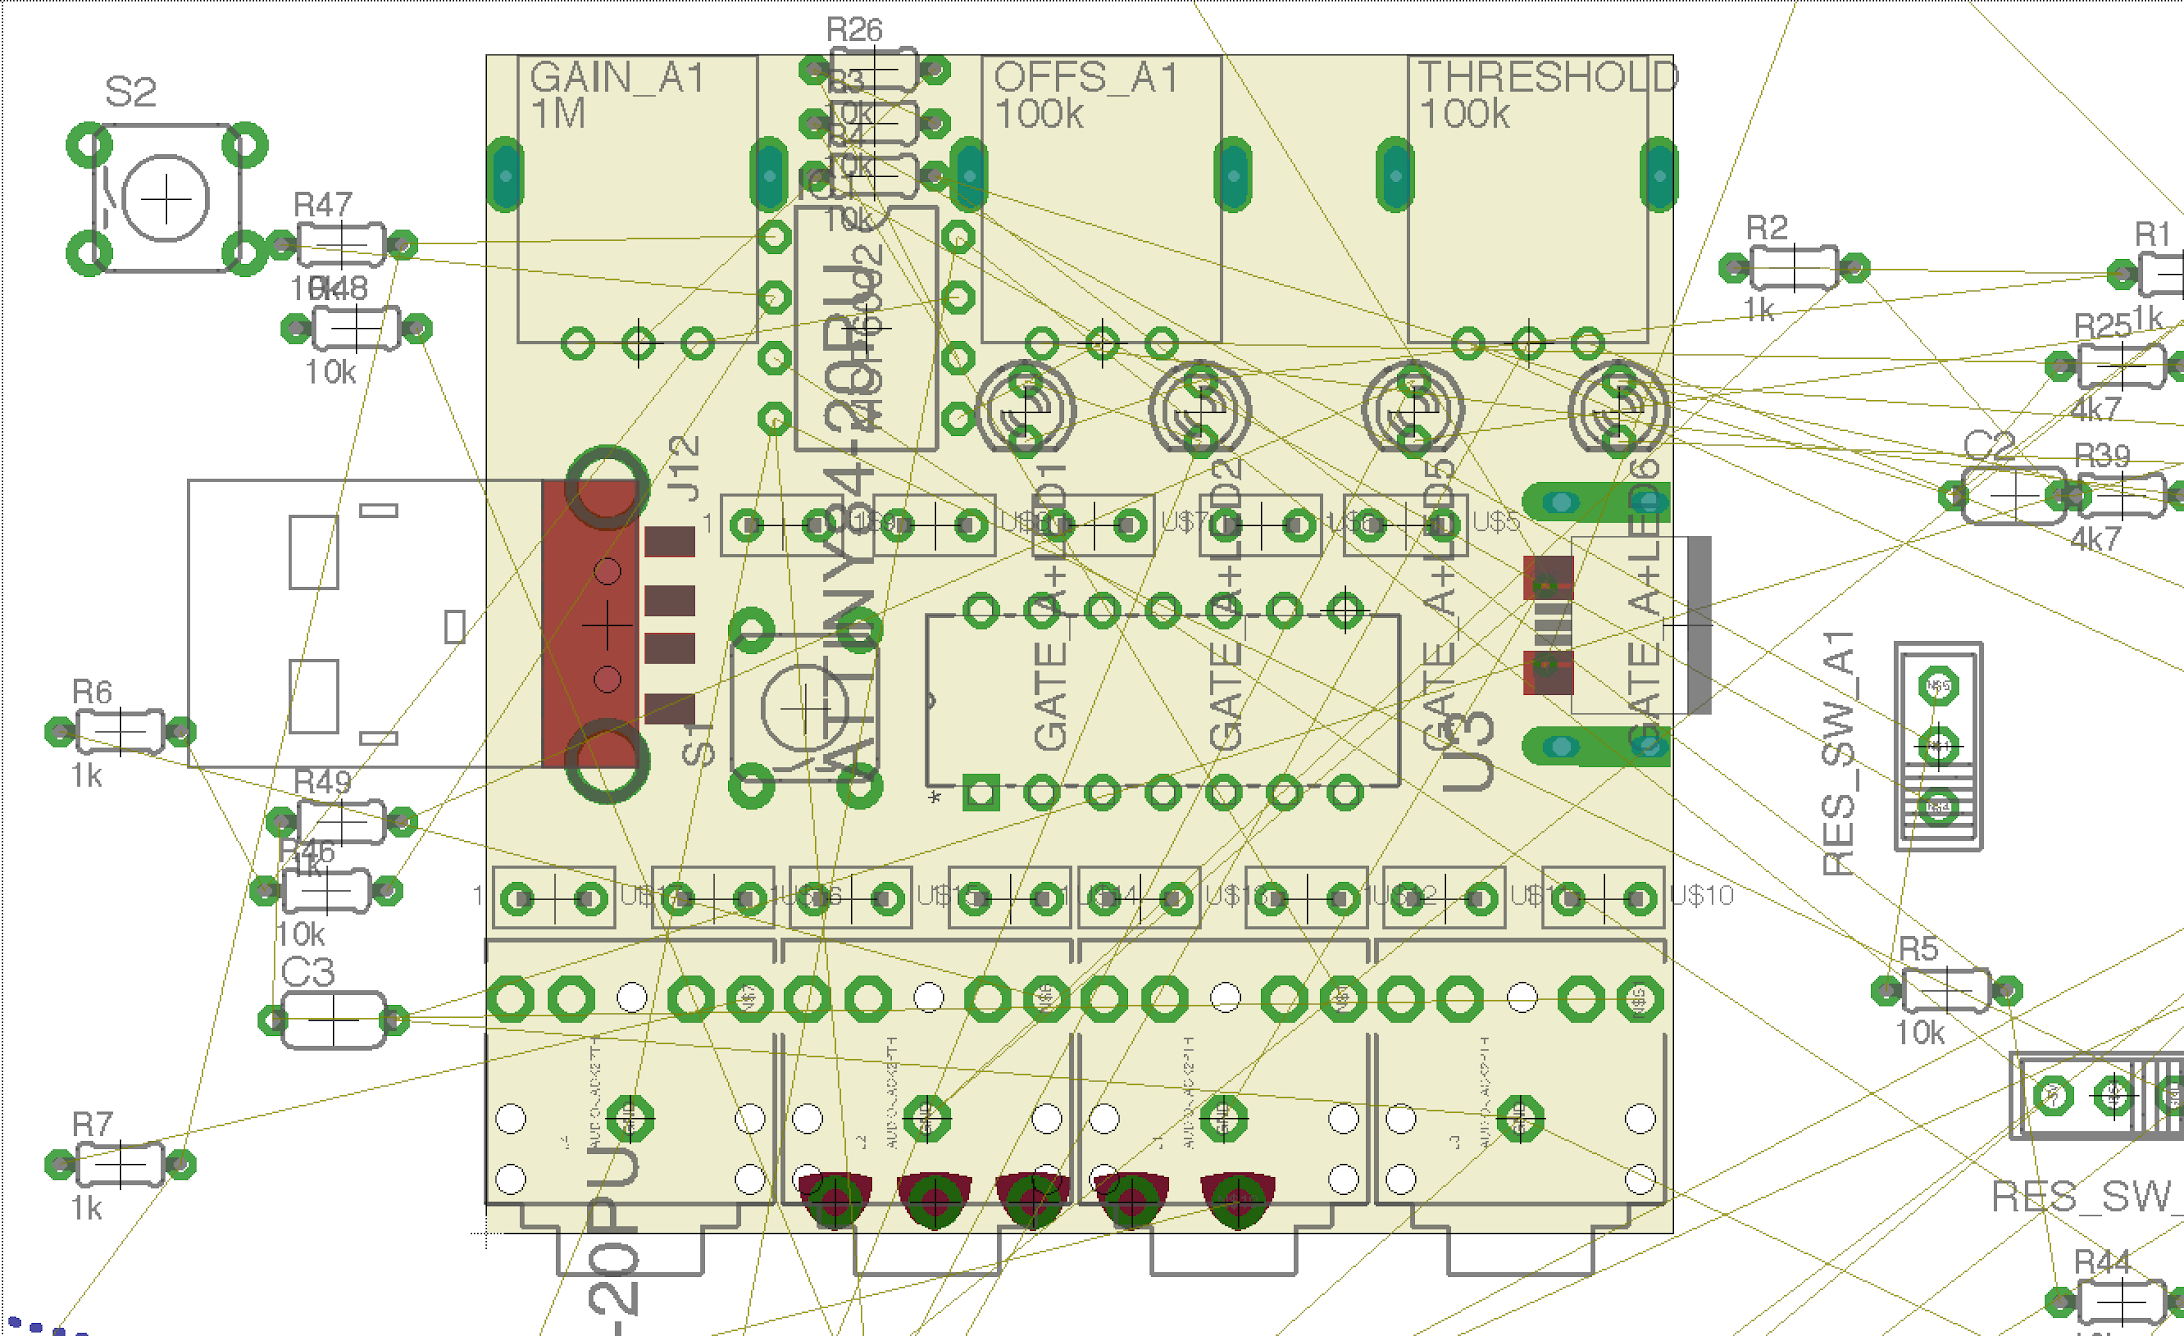 Synthesizers In The Wild With Bastl Instruments Pifcamp Usbpowered Pic Programmer Circuit Schematic This Year At Pif I Would Like To Focus On Making Very Simple Circuits That Can Help Translate Any Kind Of Analog Environmental Information Into Useful